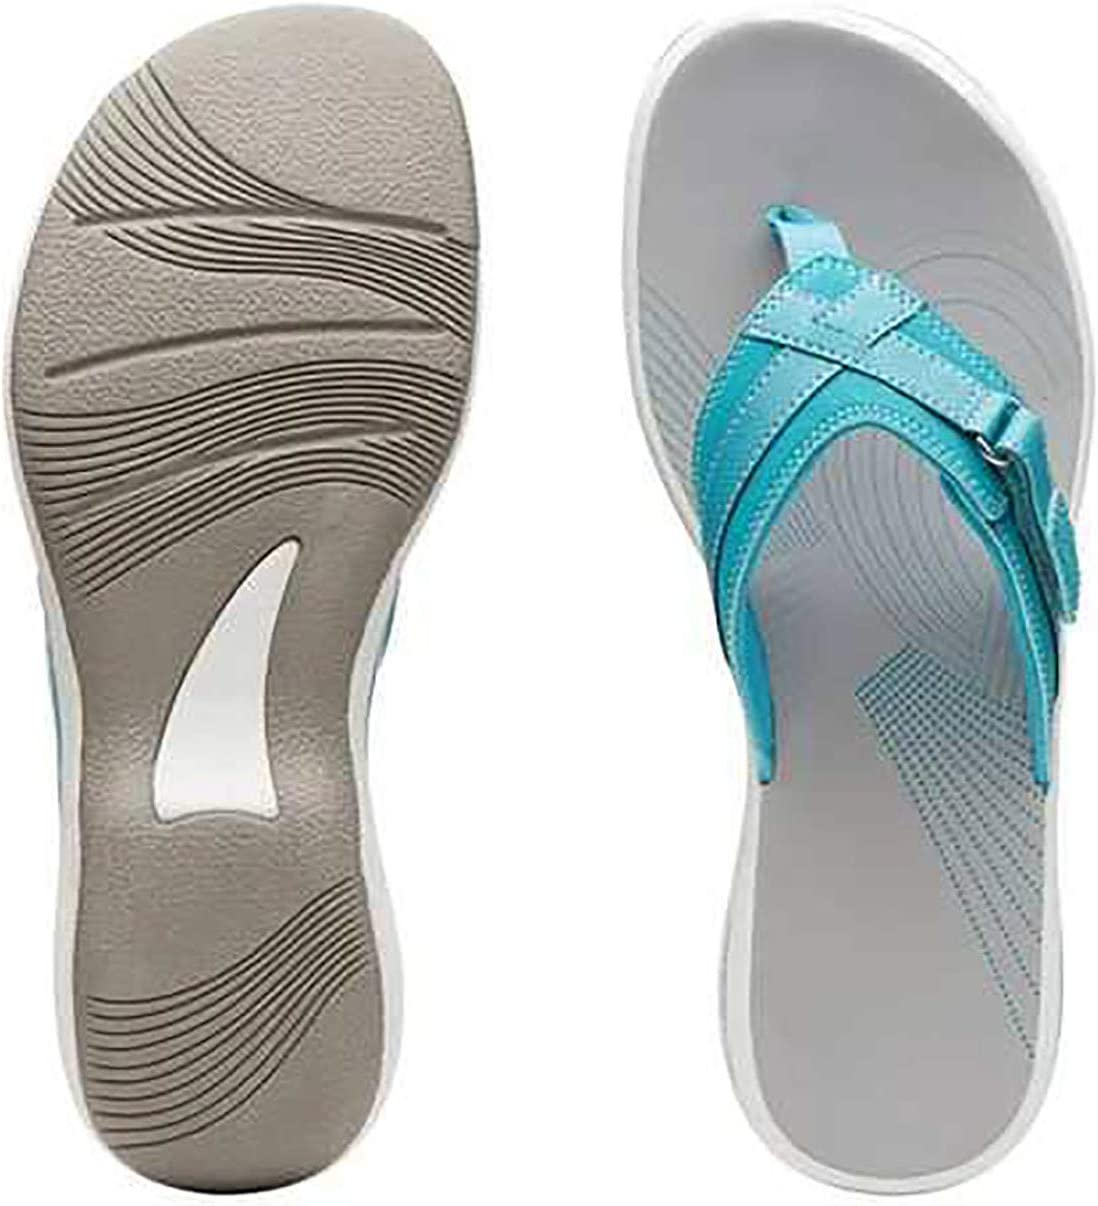 Women's Comfy Oklahoma City Mall Popular overseas Sandals-Indoors Outdoors Breathable Cushioned Inso